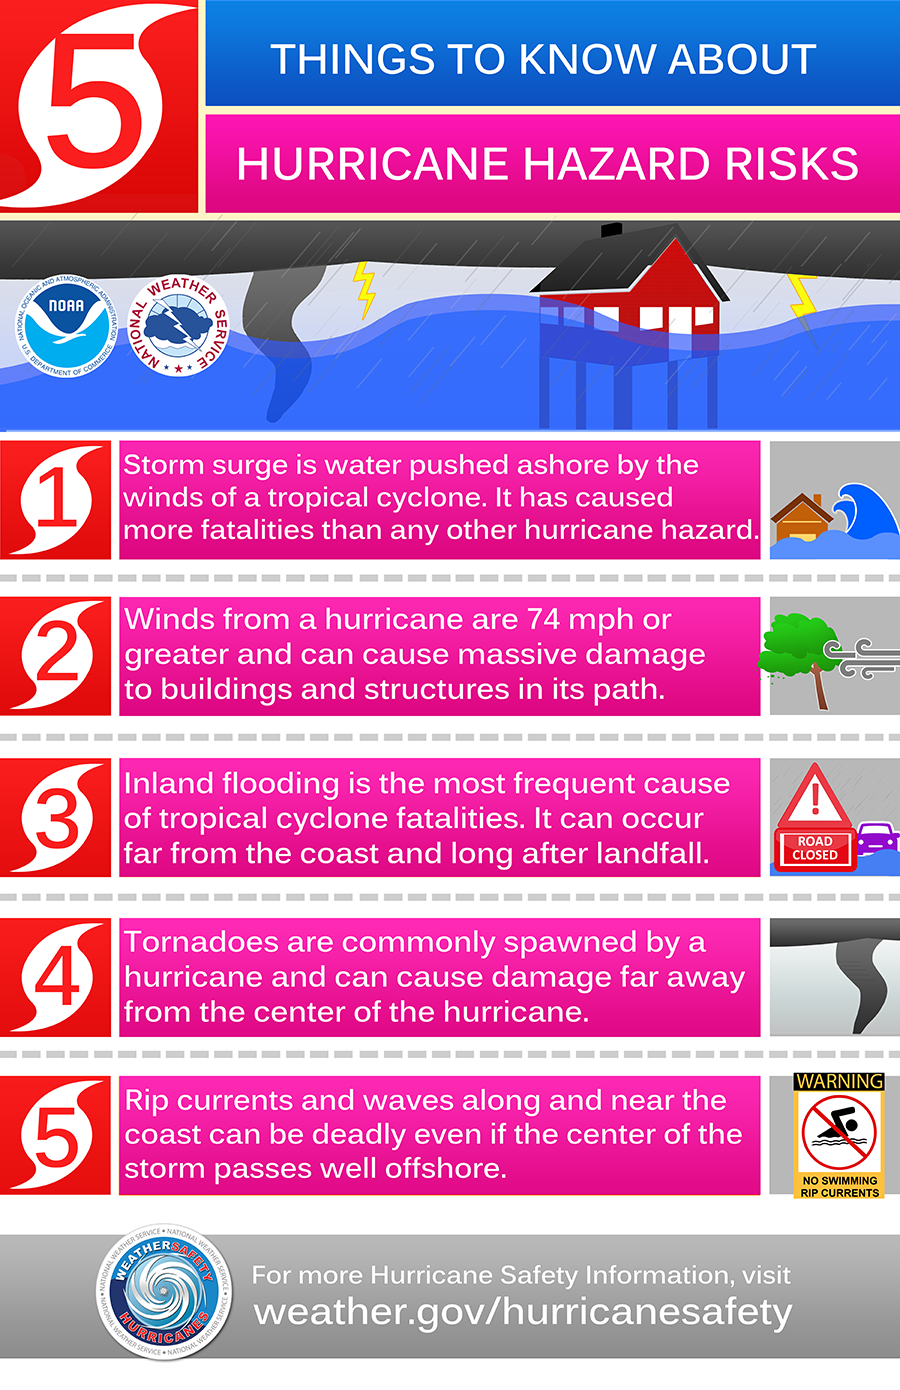 hurricanehazards4 4 16